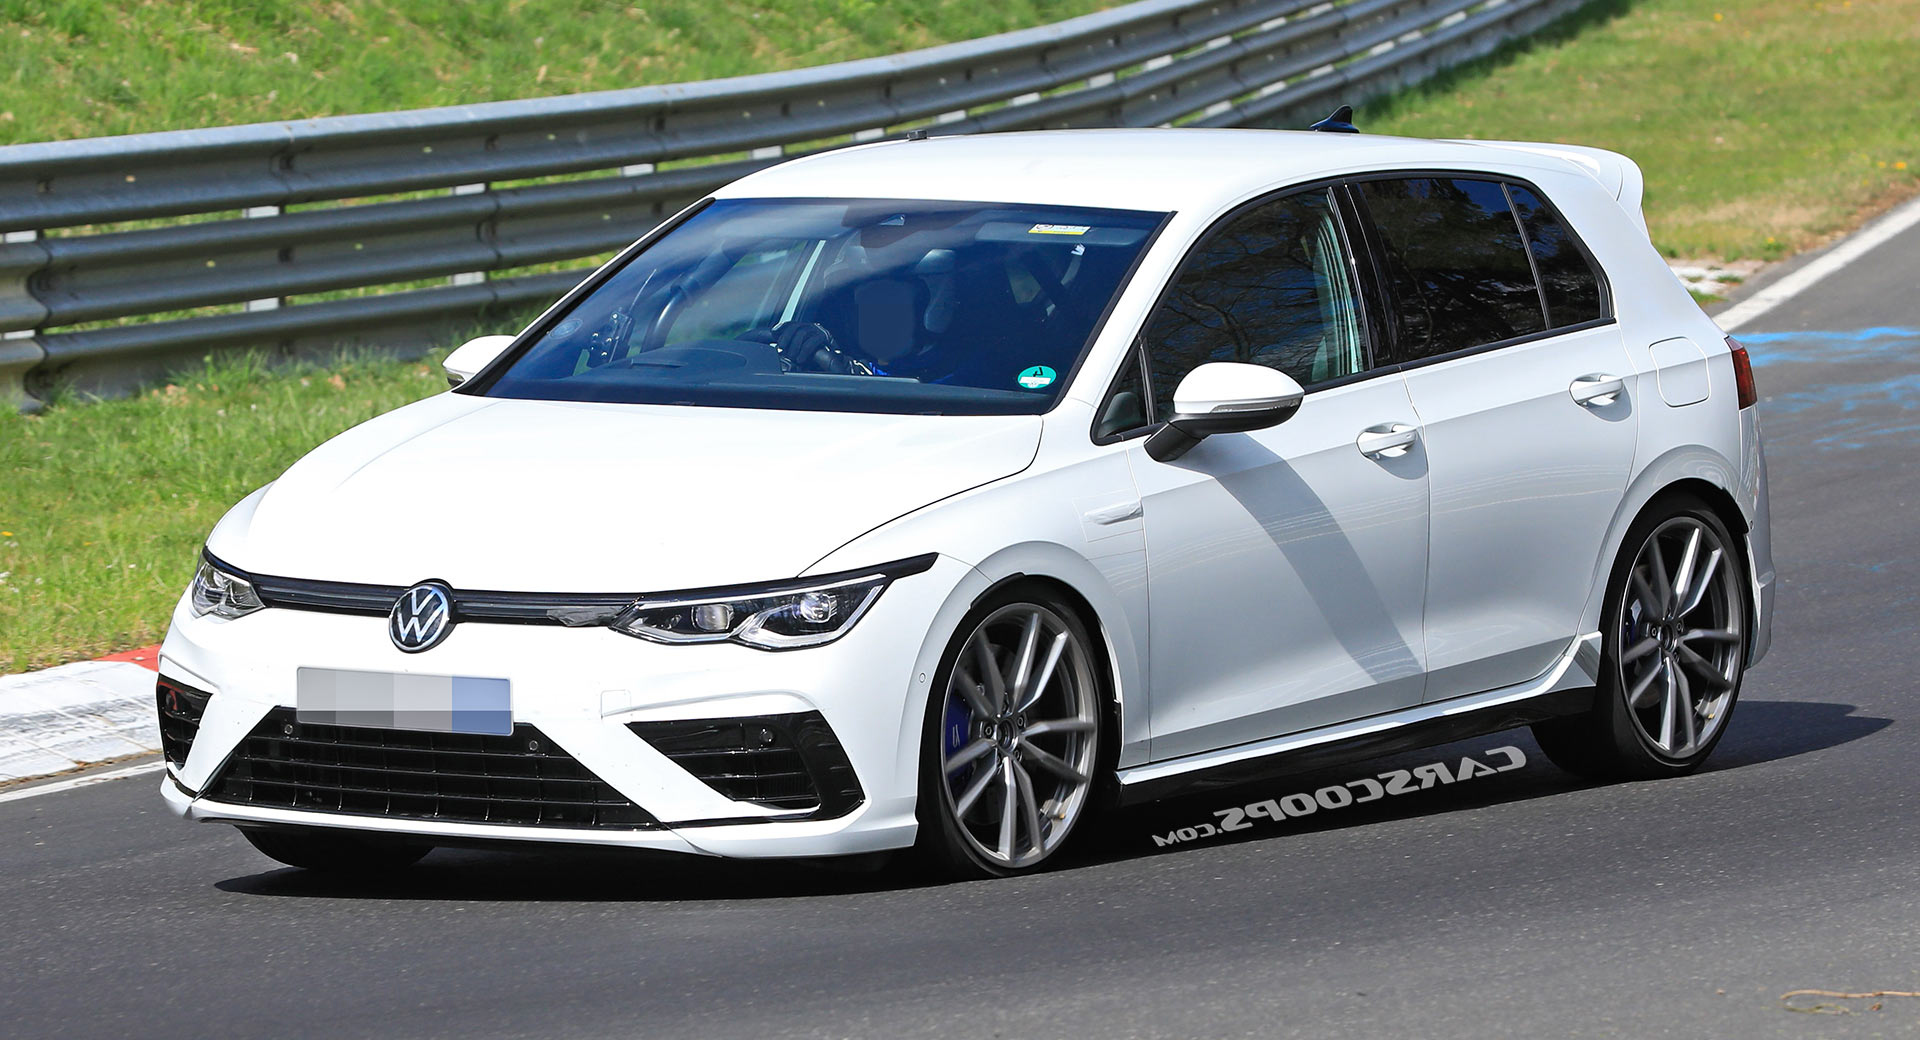 2021 Volkswagen Golf R Sounds Tamed But Looks Fast On Track